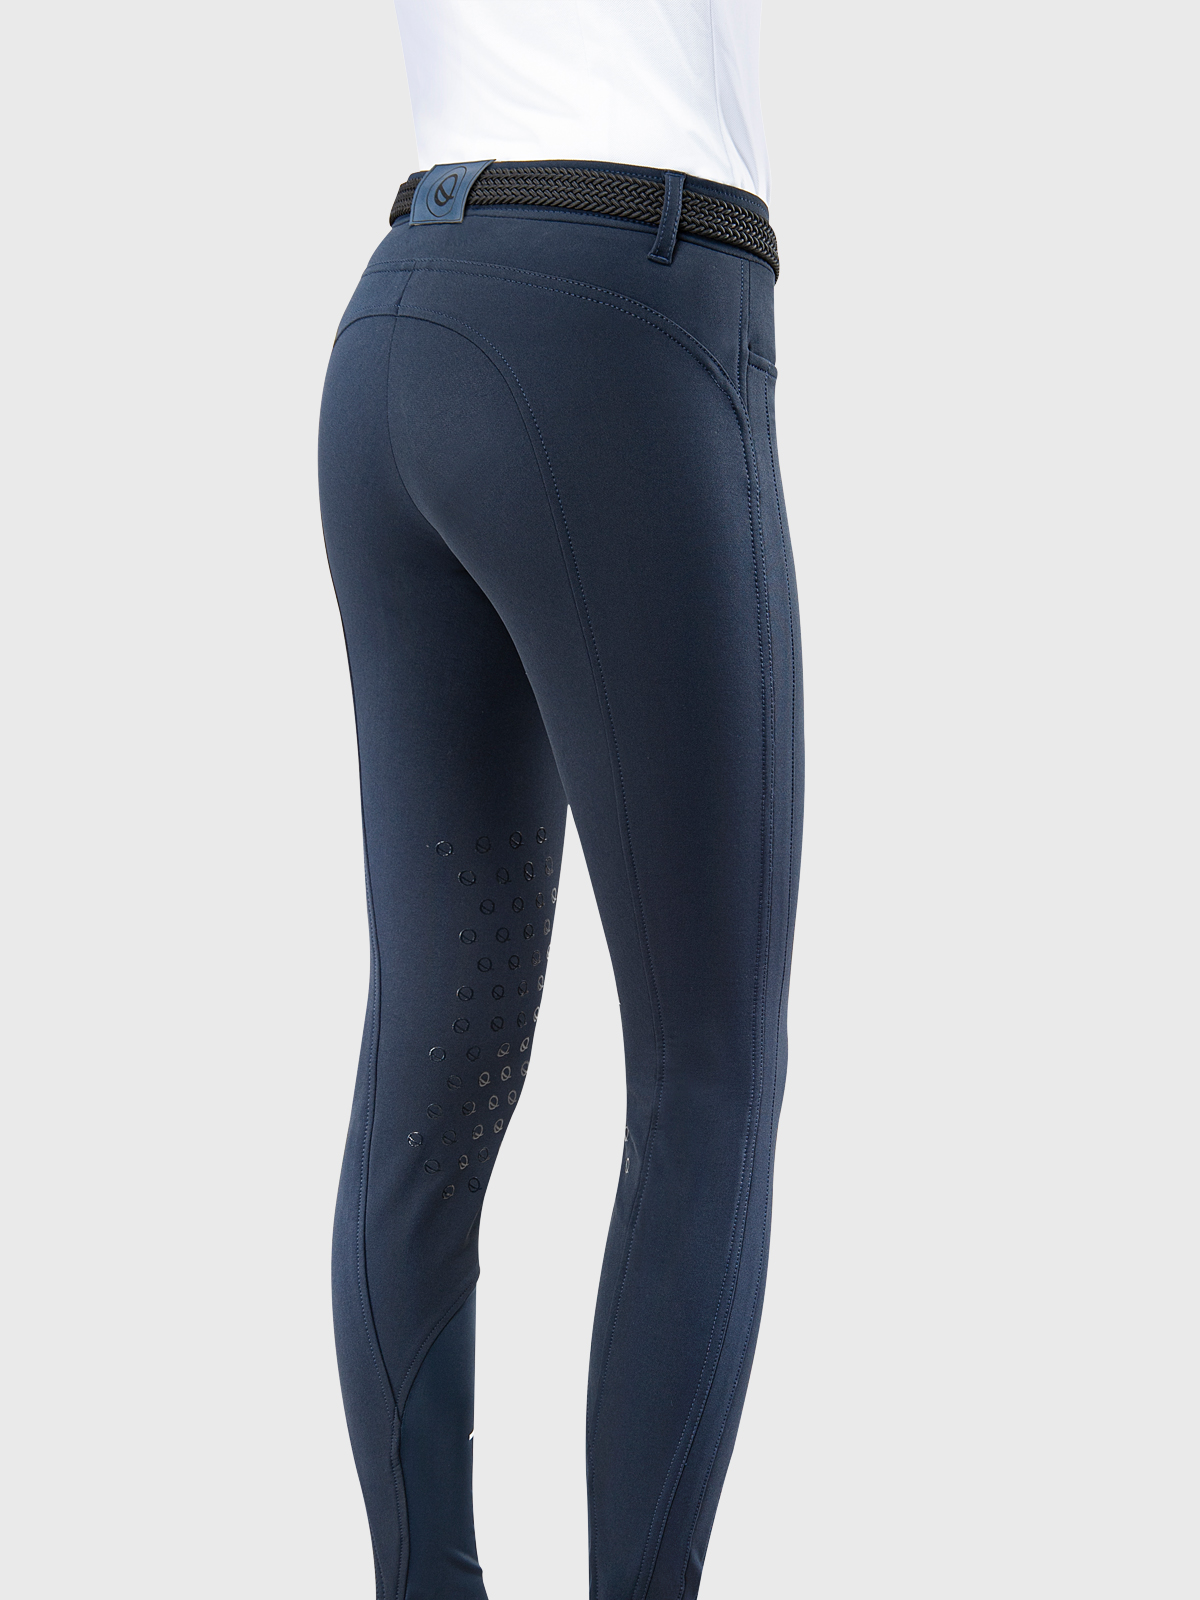 EQODE WOMEN'S BREECHES WITH KNEE GRIP 5